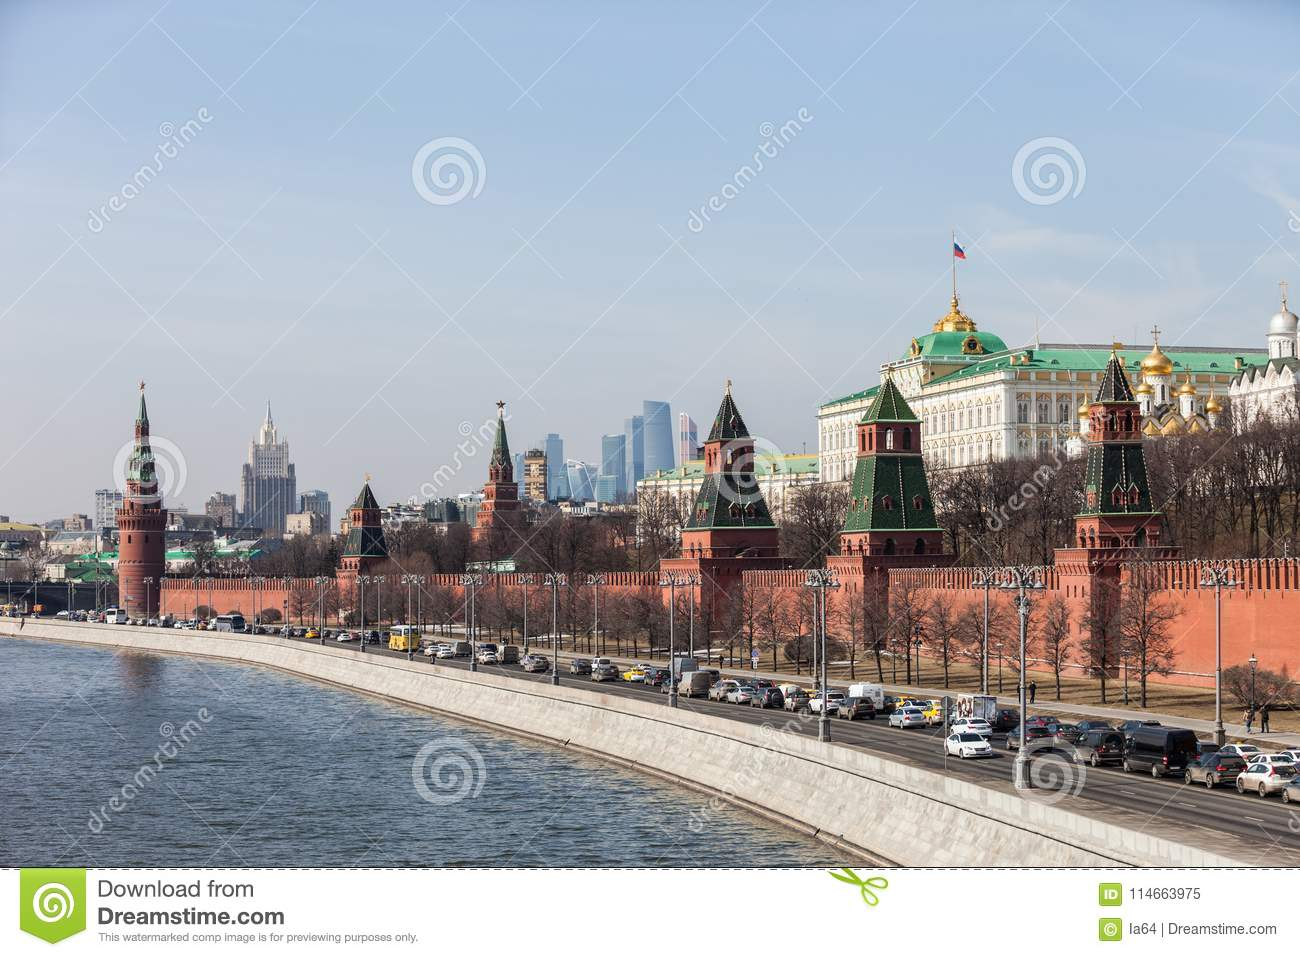 Grand Kremlin Palace Walls And Towers And Modern Moscow